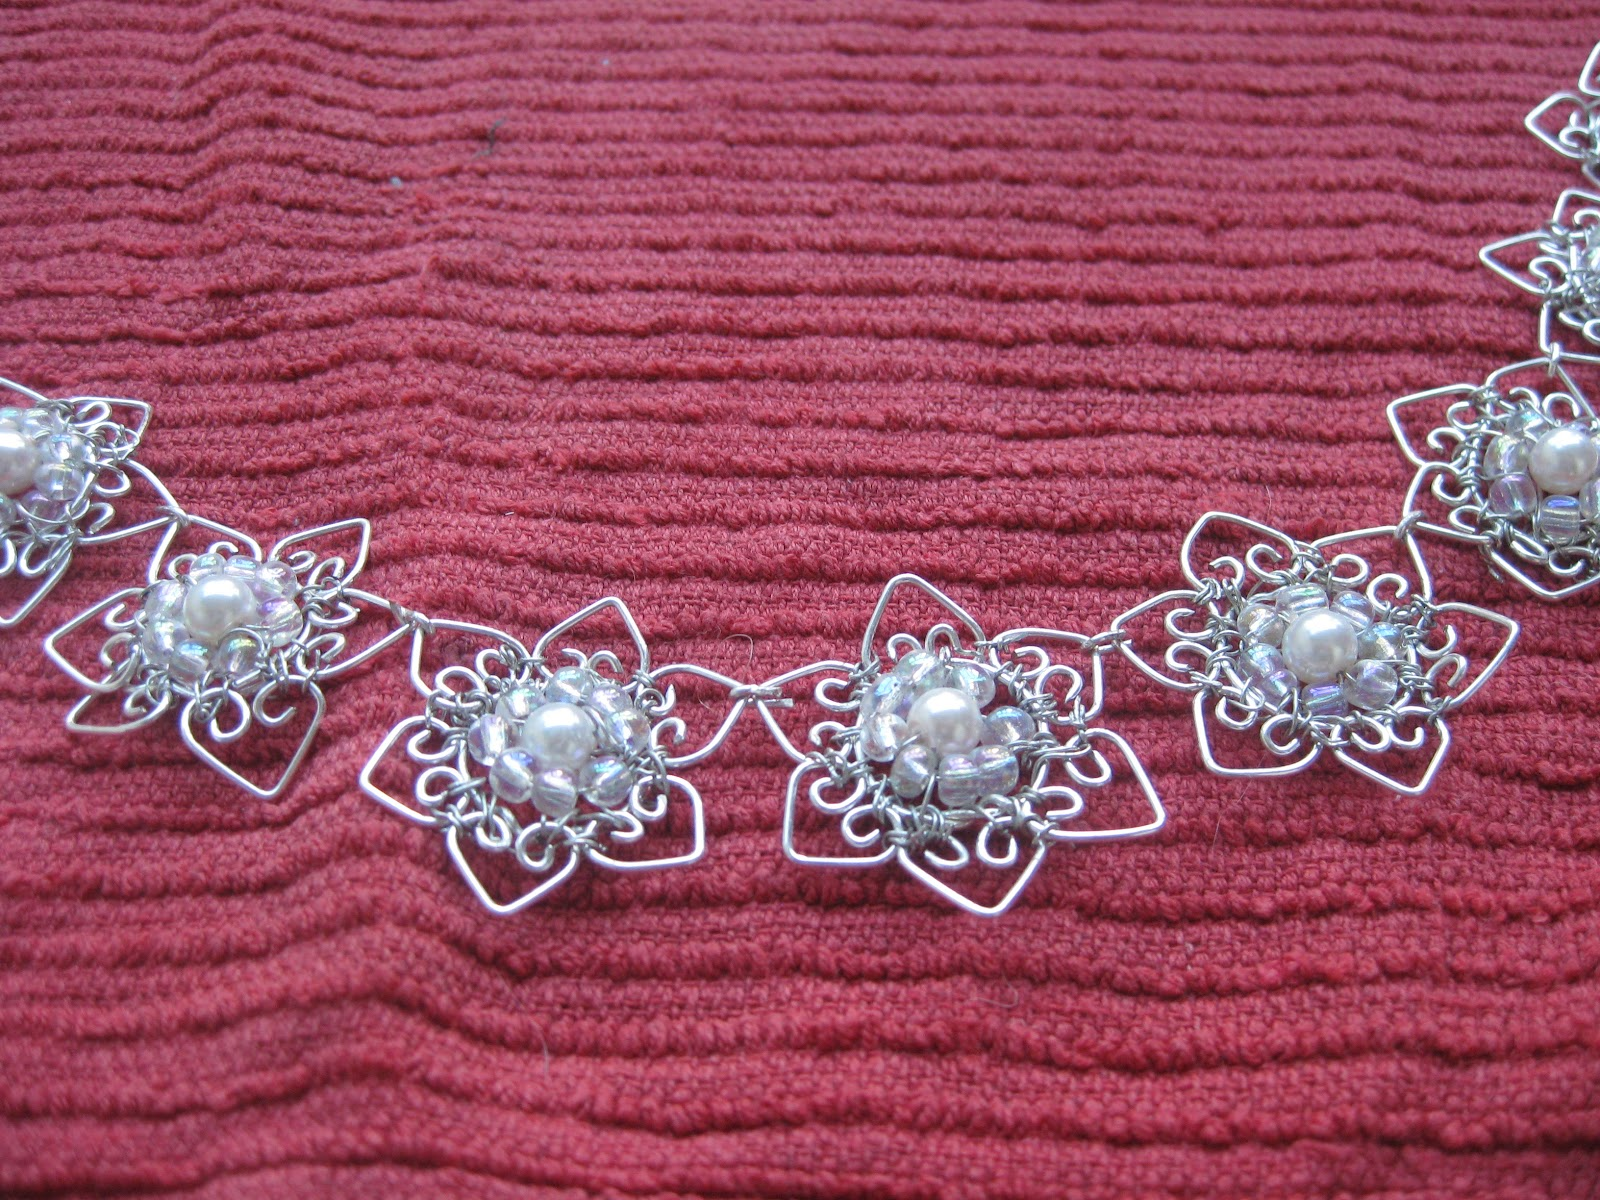 Veers homemade Jewels: Made to Order: silver wire wrapped flowers ...